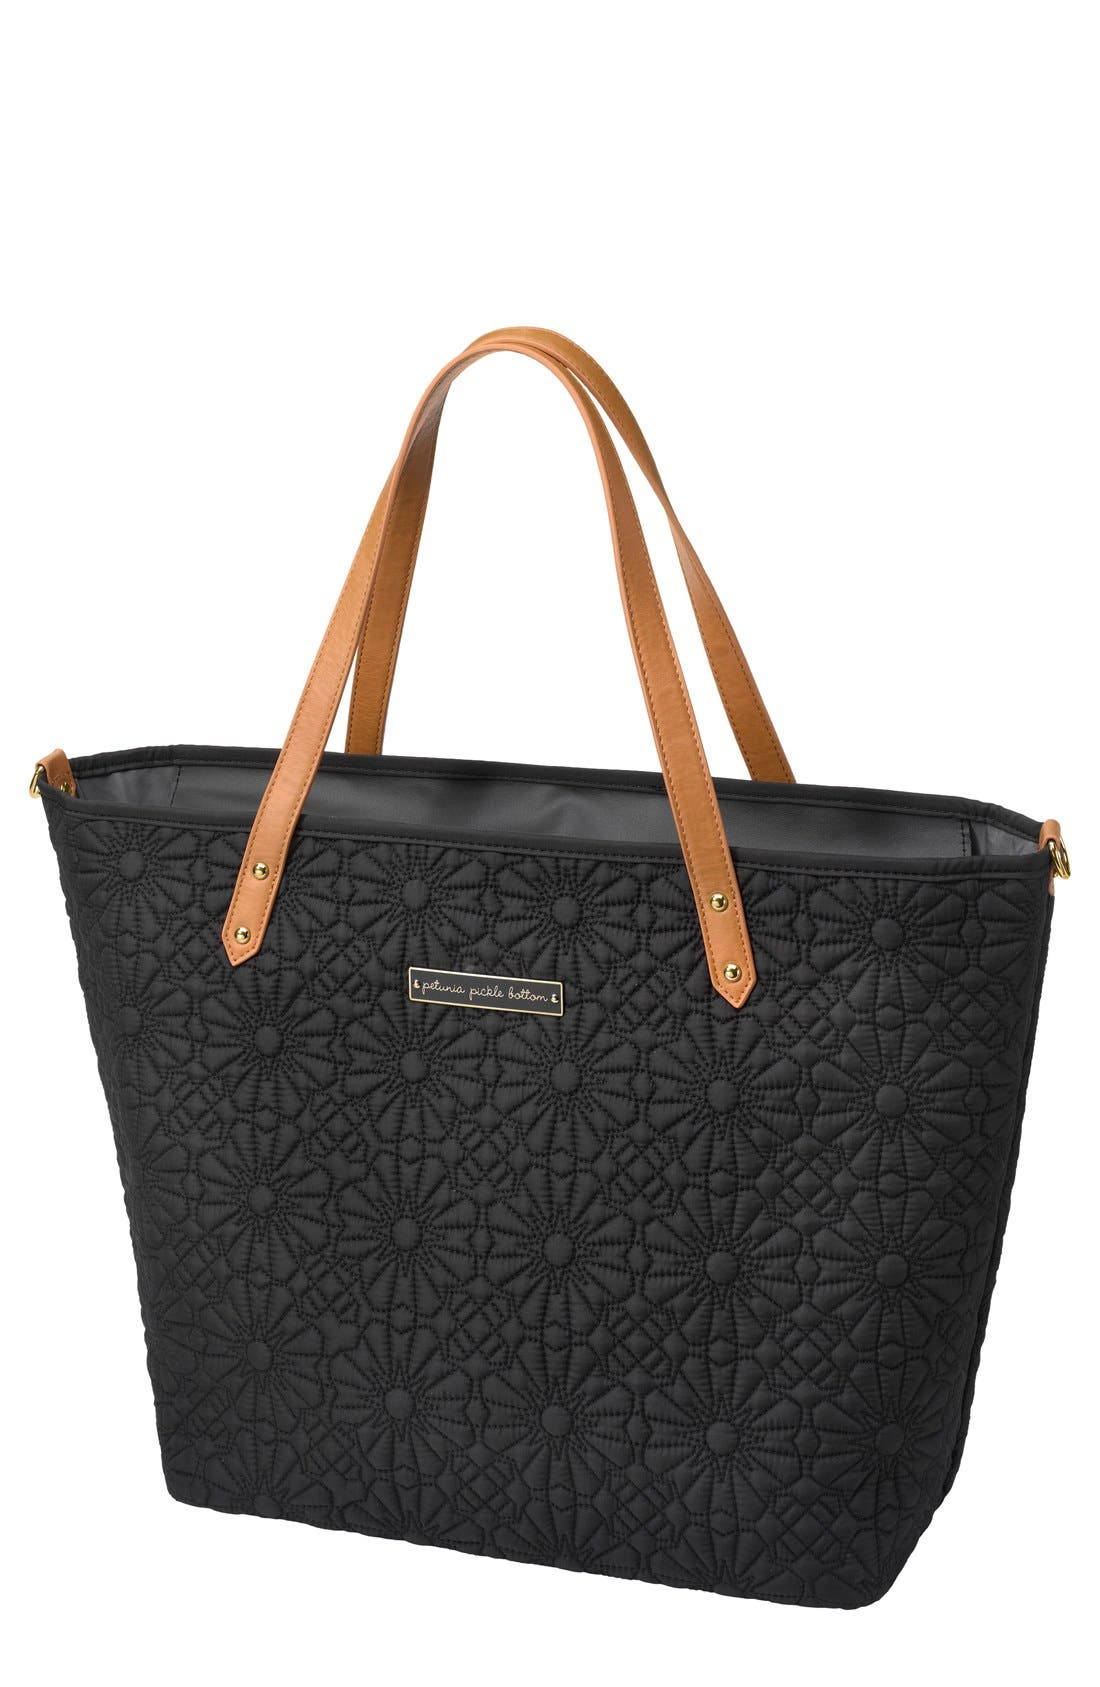 'Downtown' Floral Embossed Diaper Tote,                             Main thumbnail 1, color,                             Bedford Avenue